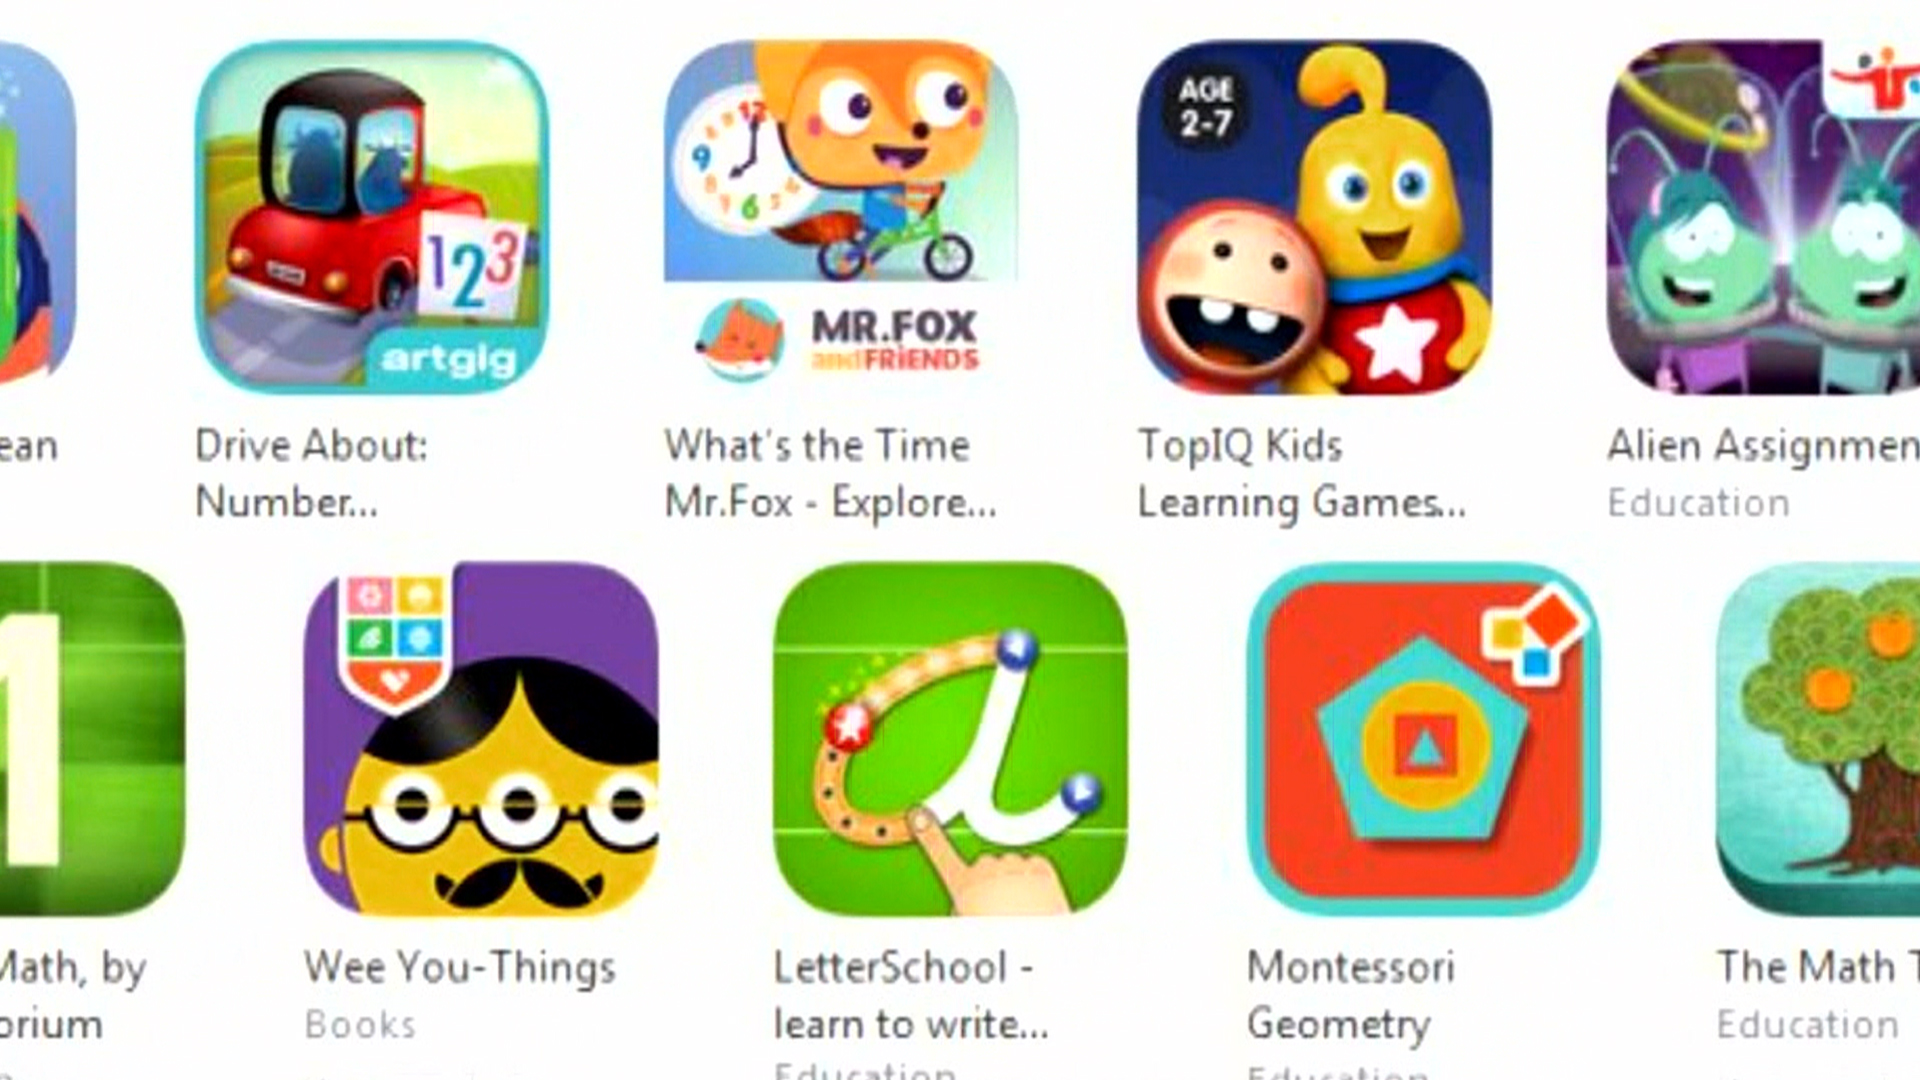 'YouTube Kids' app criticized over content - TODAY.com